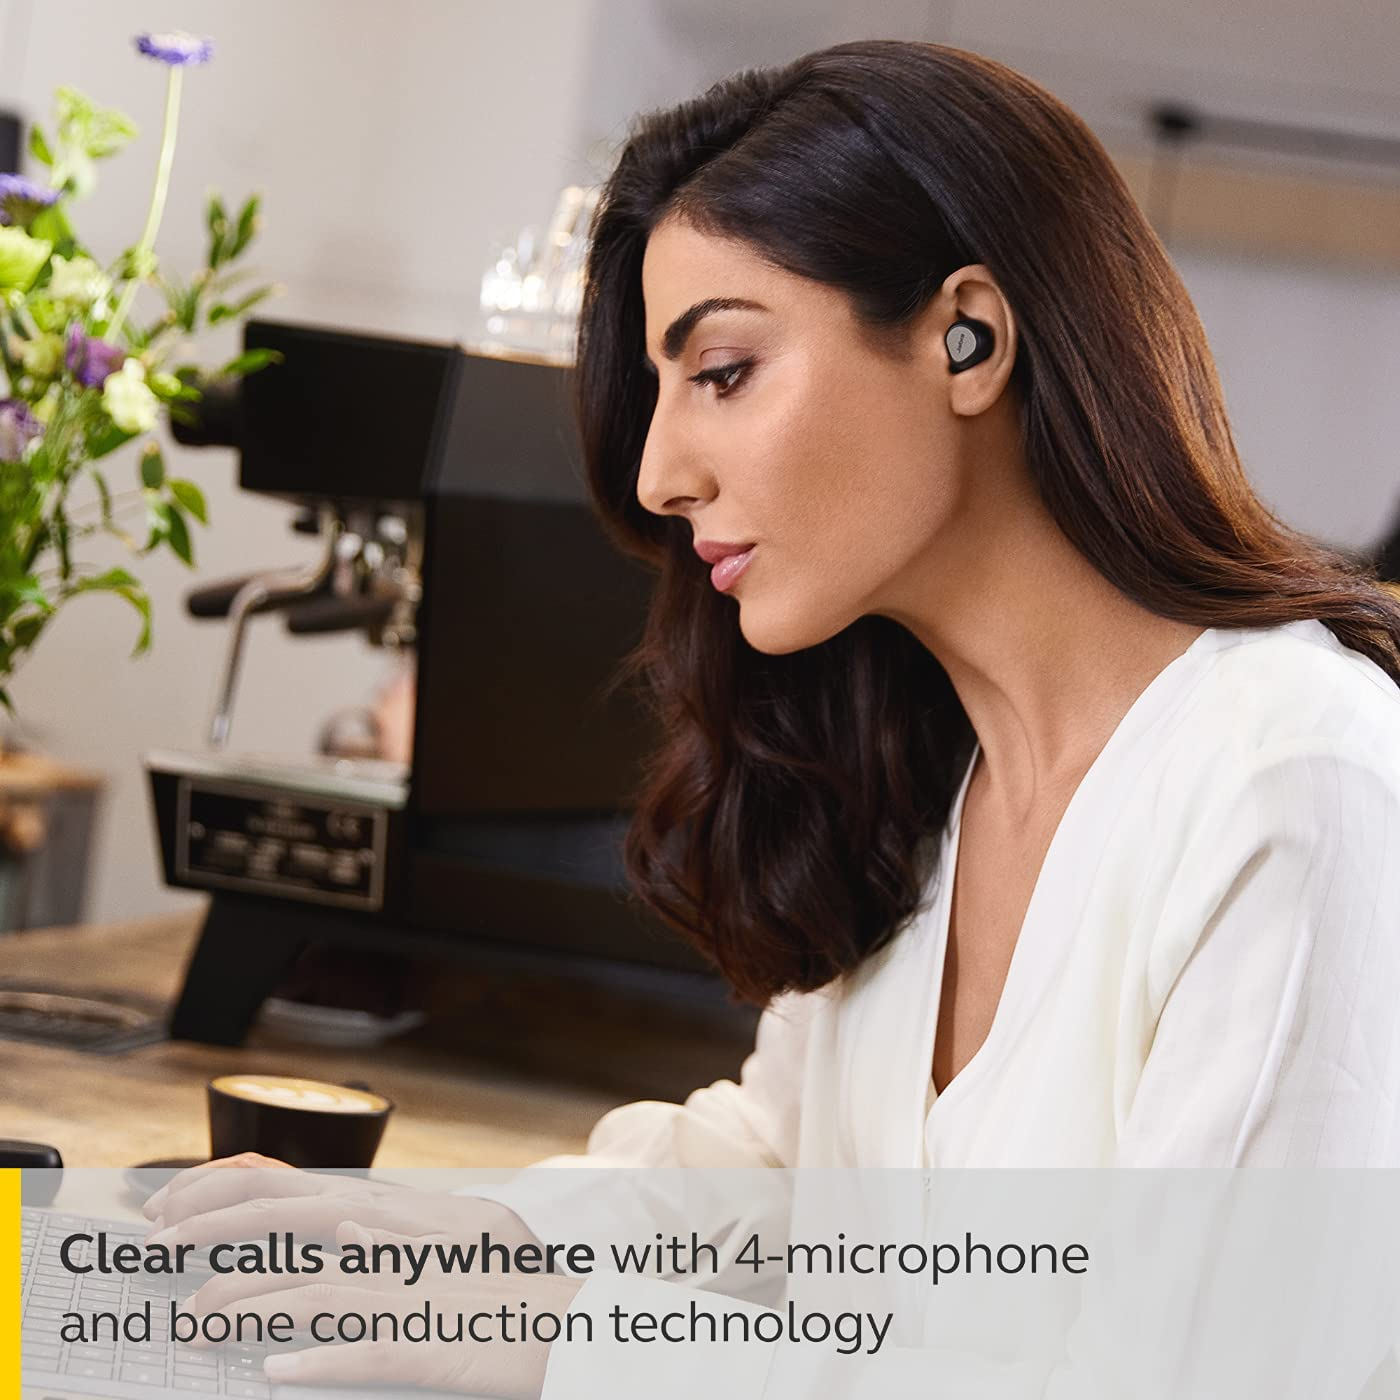 Jabra Elite 7 Pro In Ear Bluetooth Earbuds - Adjustable Active Noise Cancellation True Wireless Buds in a compact design with Jabra MultiSensor Voice Technology for Clear Calls - Titanium Black